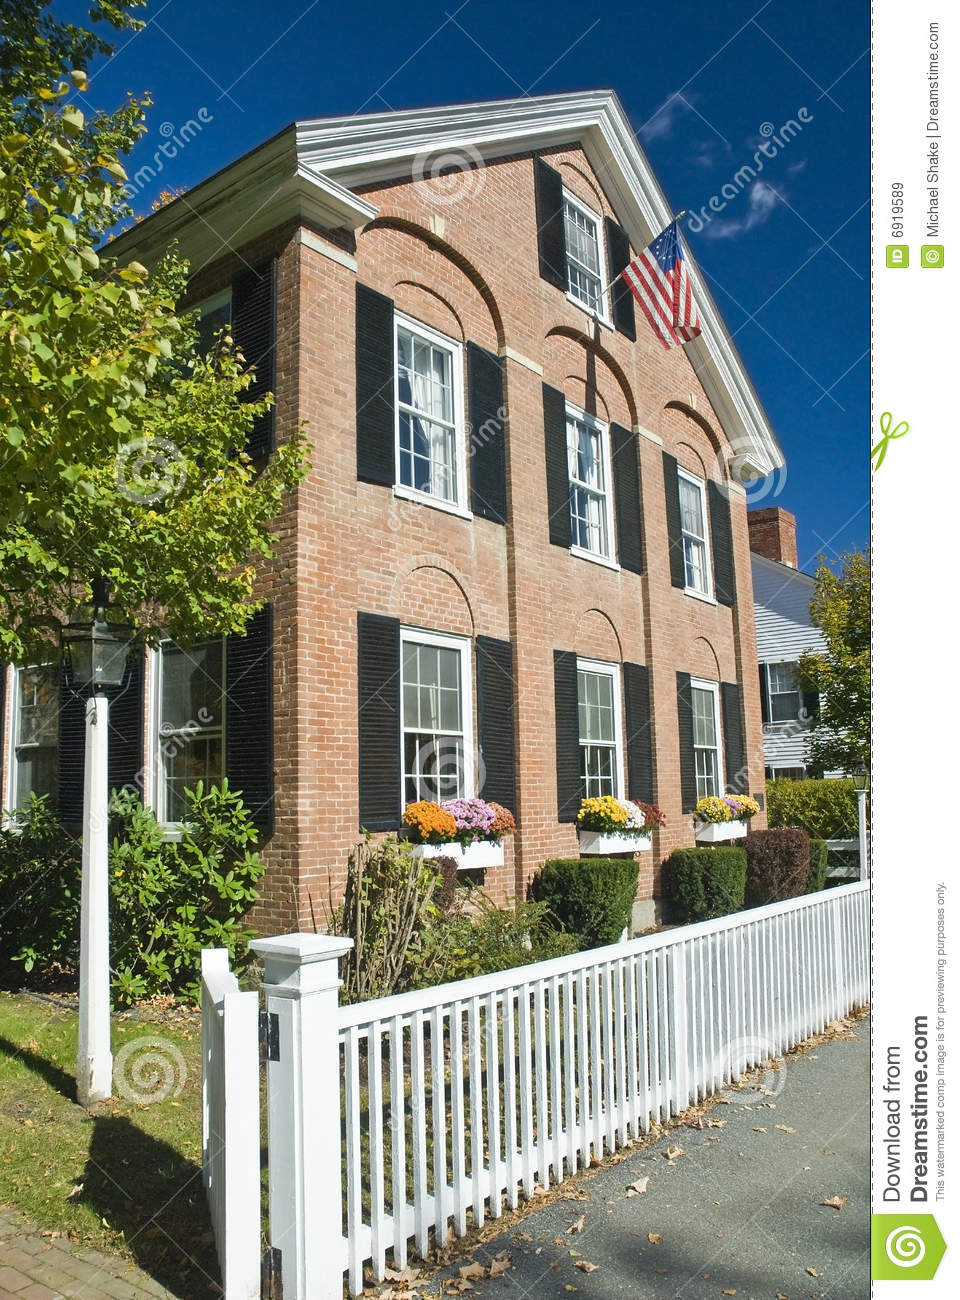 Historic old american home royalty free stock images for Old american houses